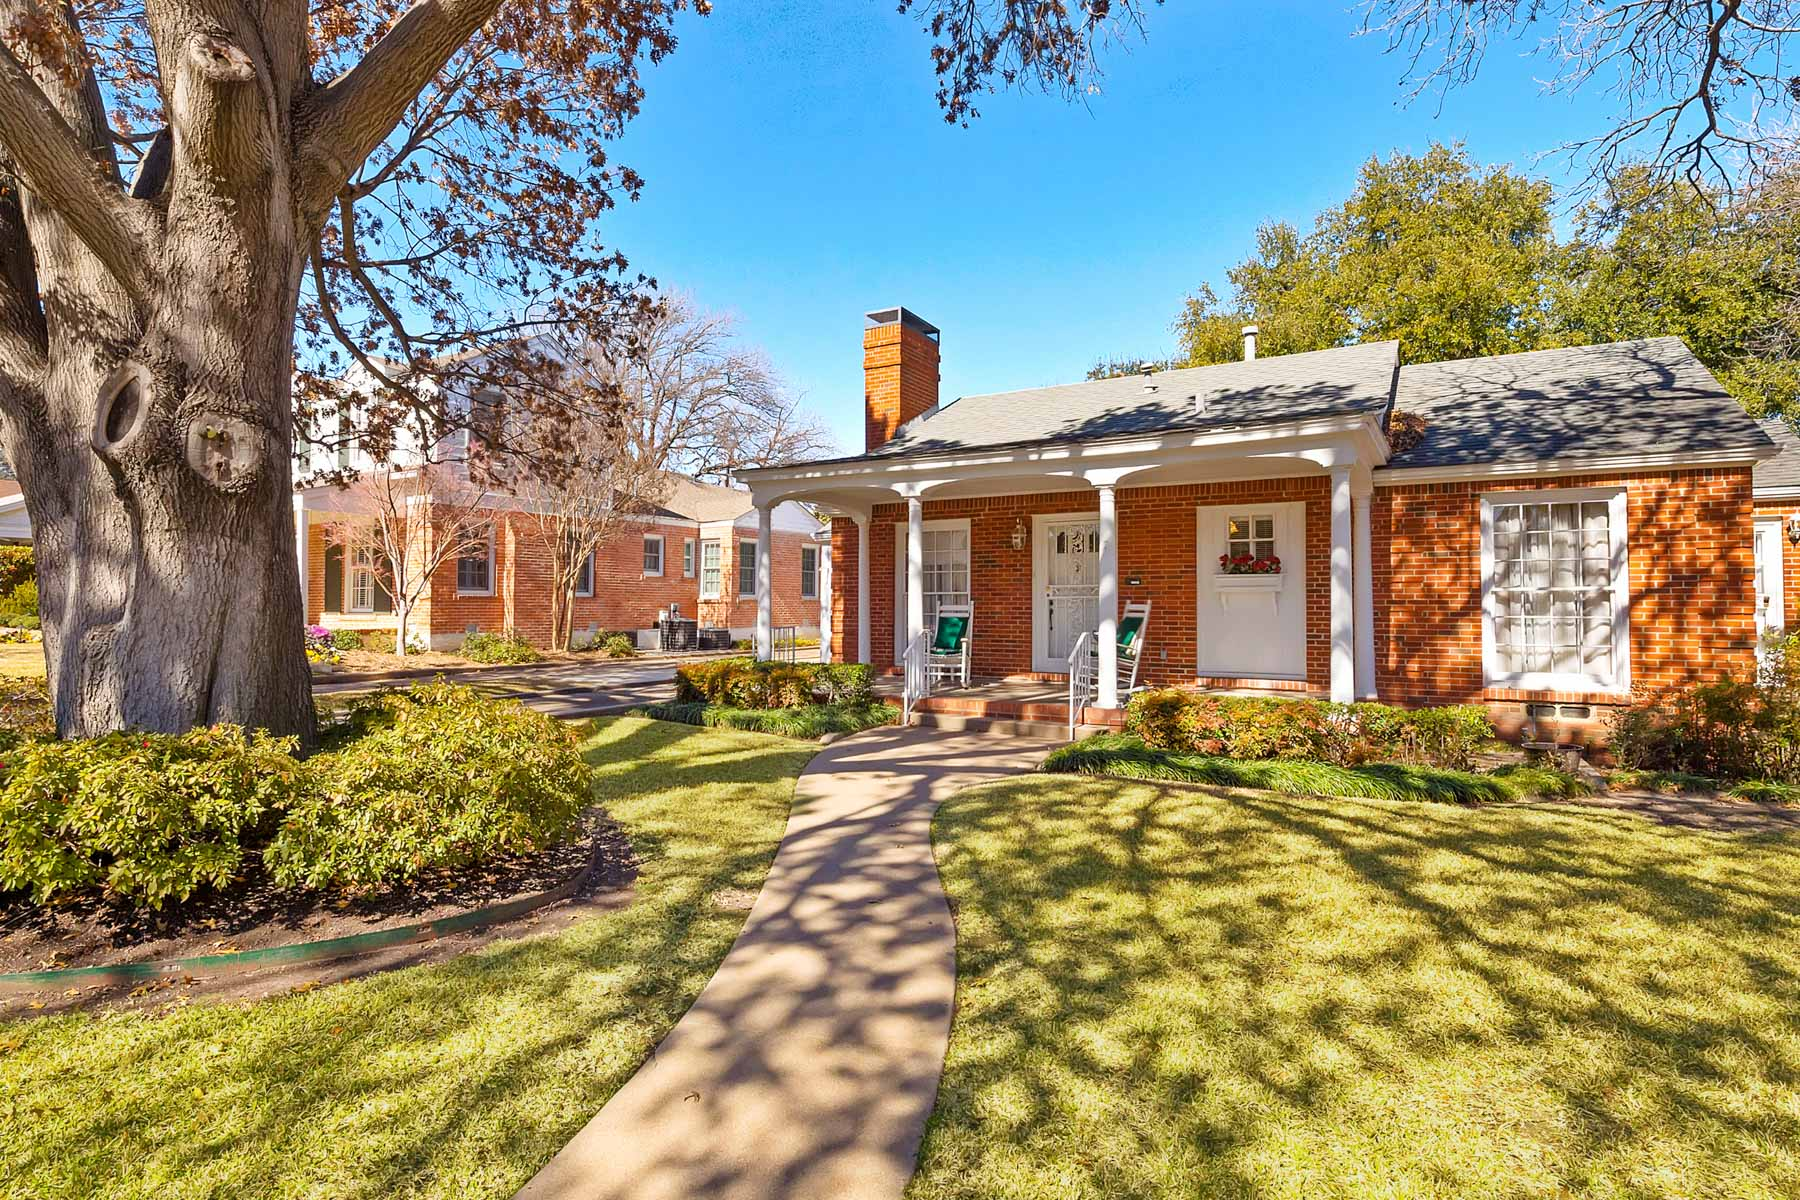 Single Family Home for Sale at Charming Home with Tons of Character 3900 Potomac Avenue Fort Worth, Texas, 76107 United States